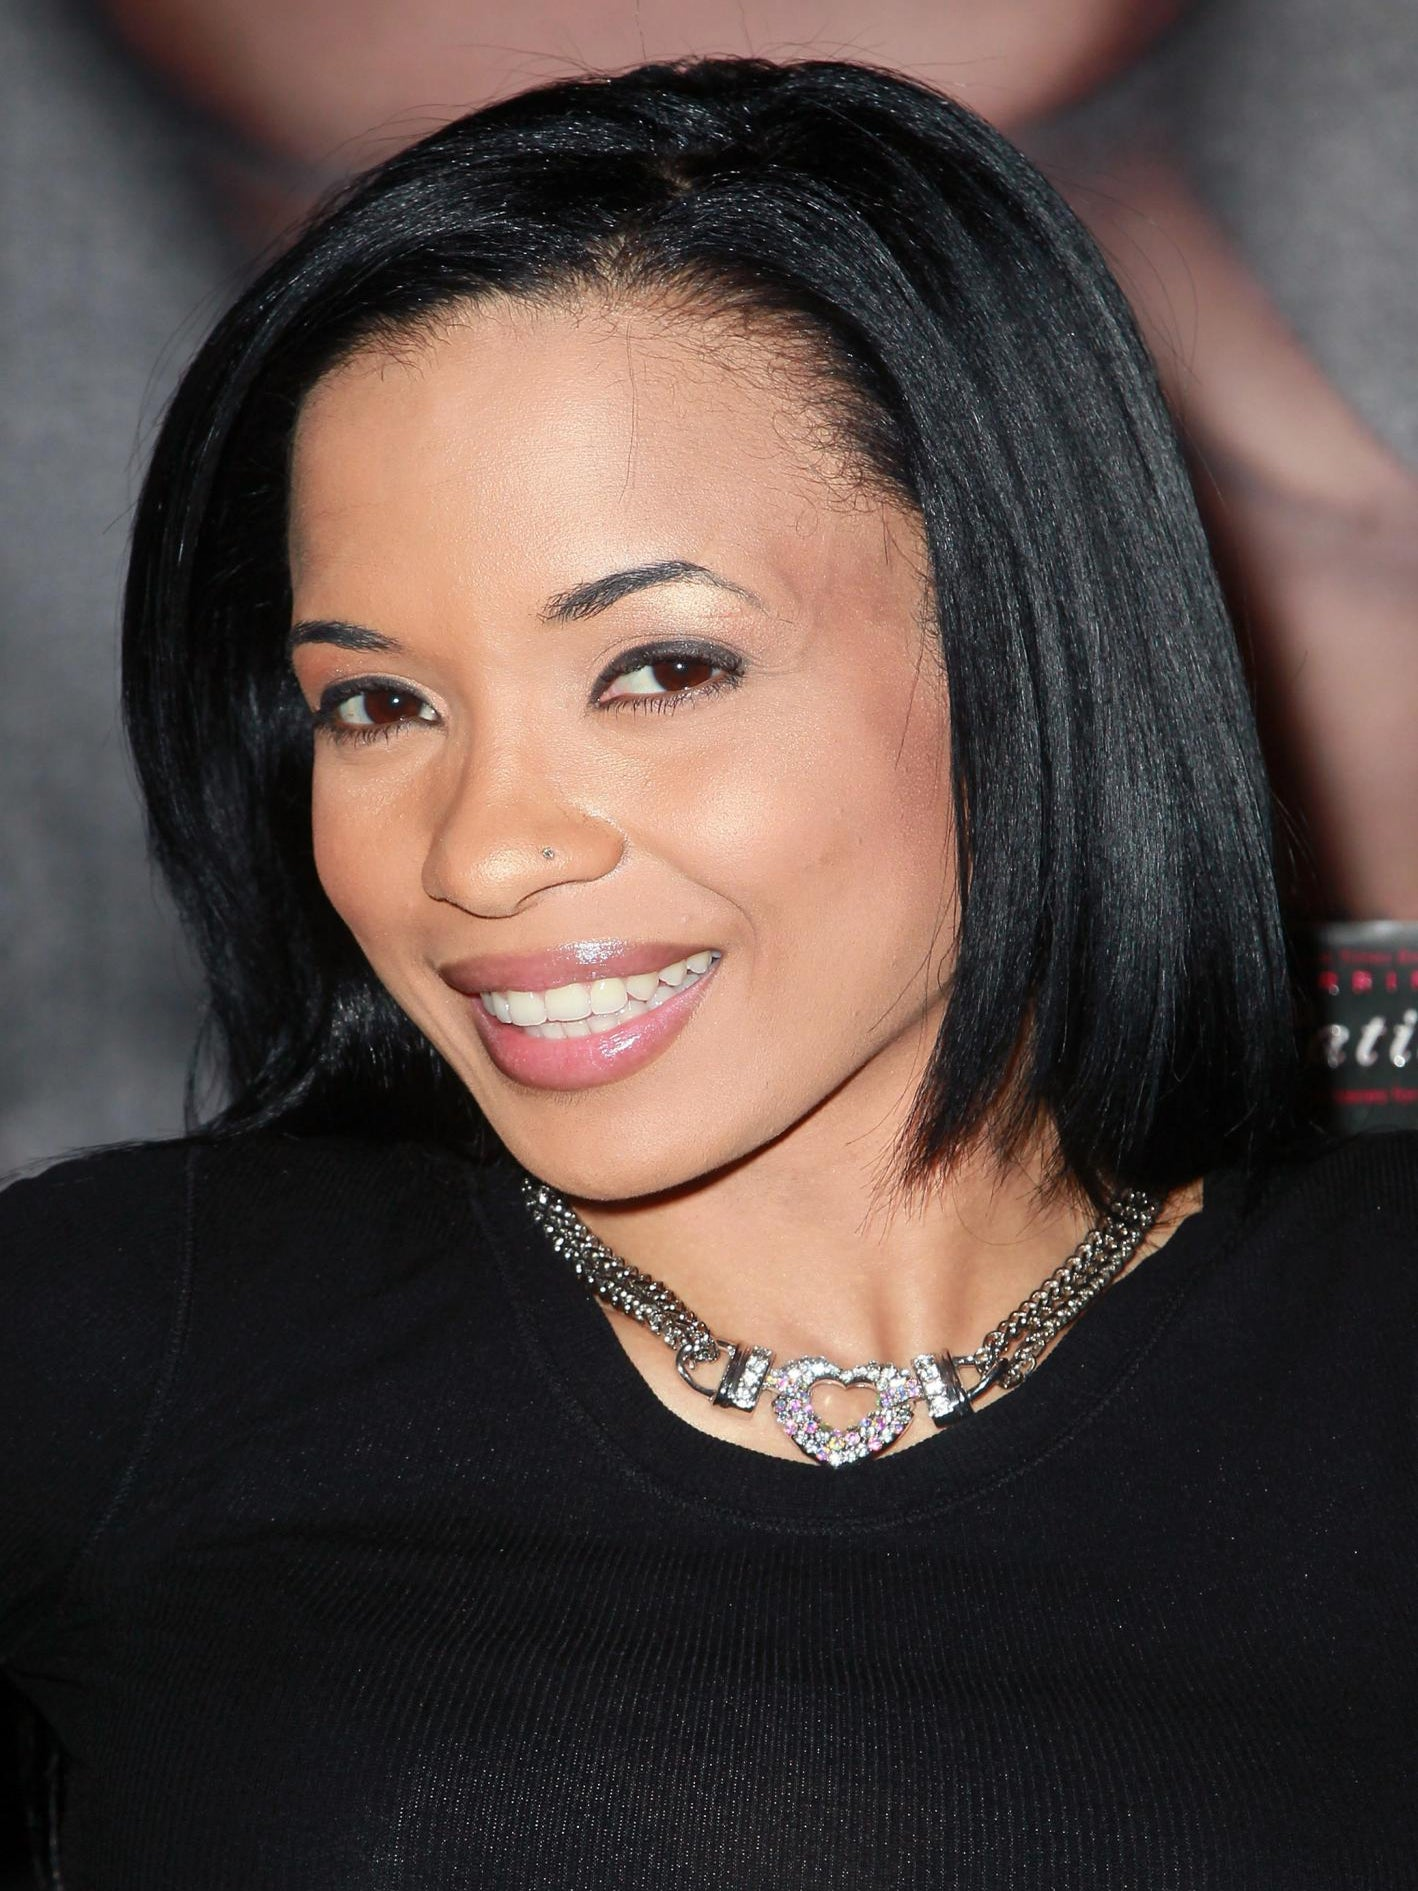 The Vixen Manual author Karrine Steffans claims she had a